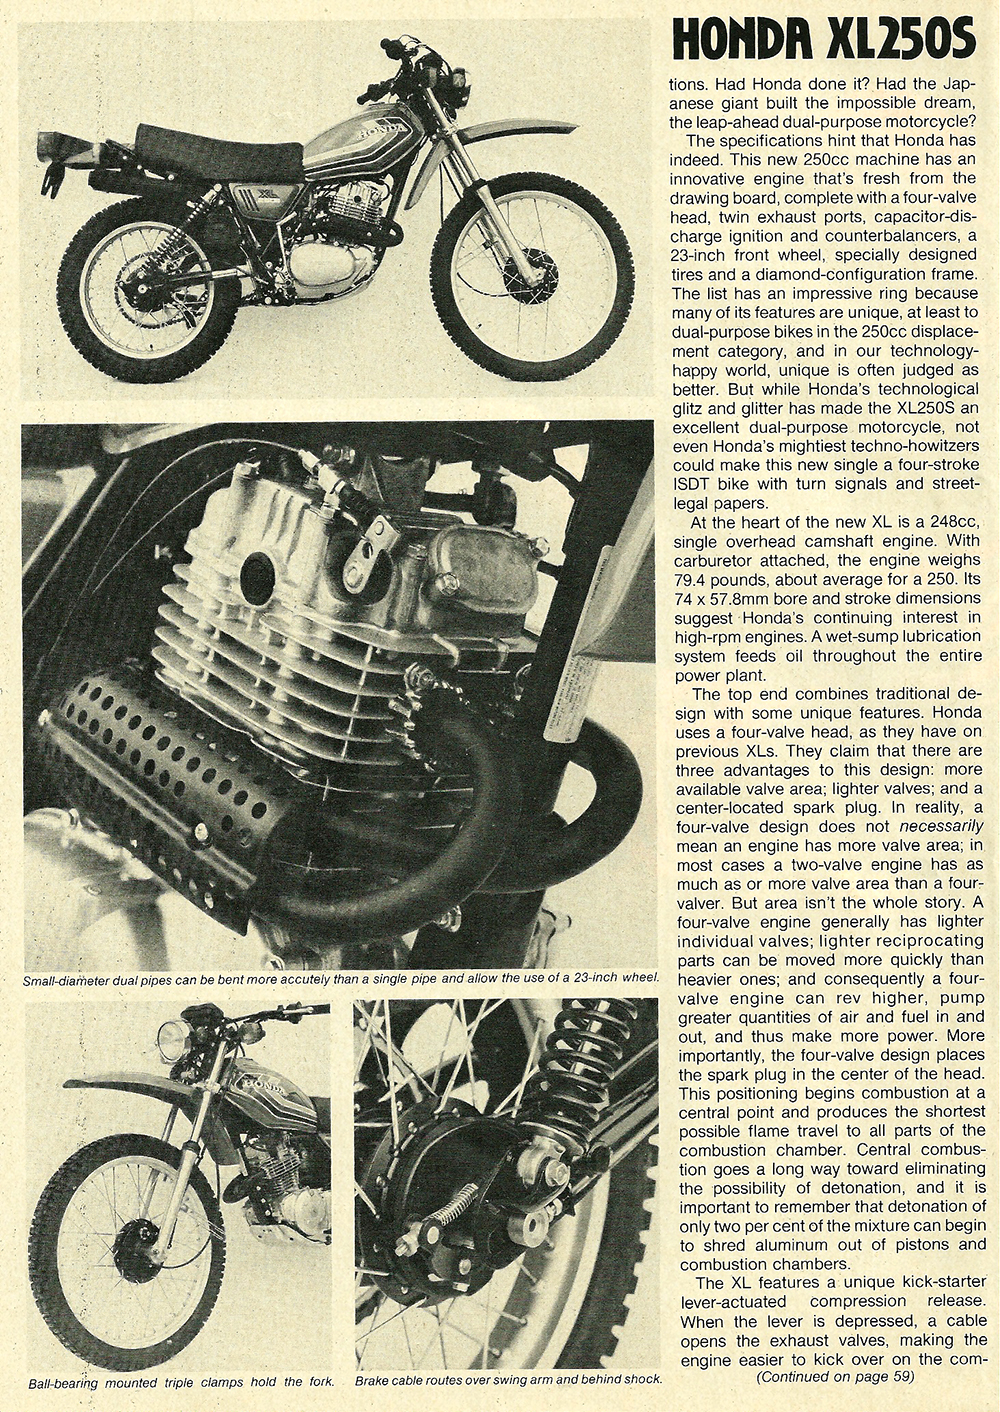 1978 Honda XL250S road test 03.jpg